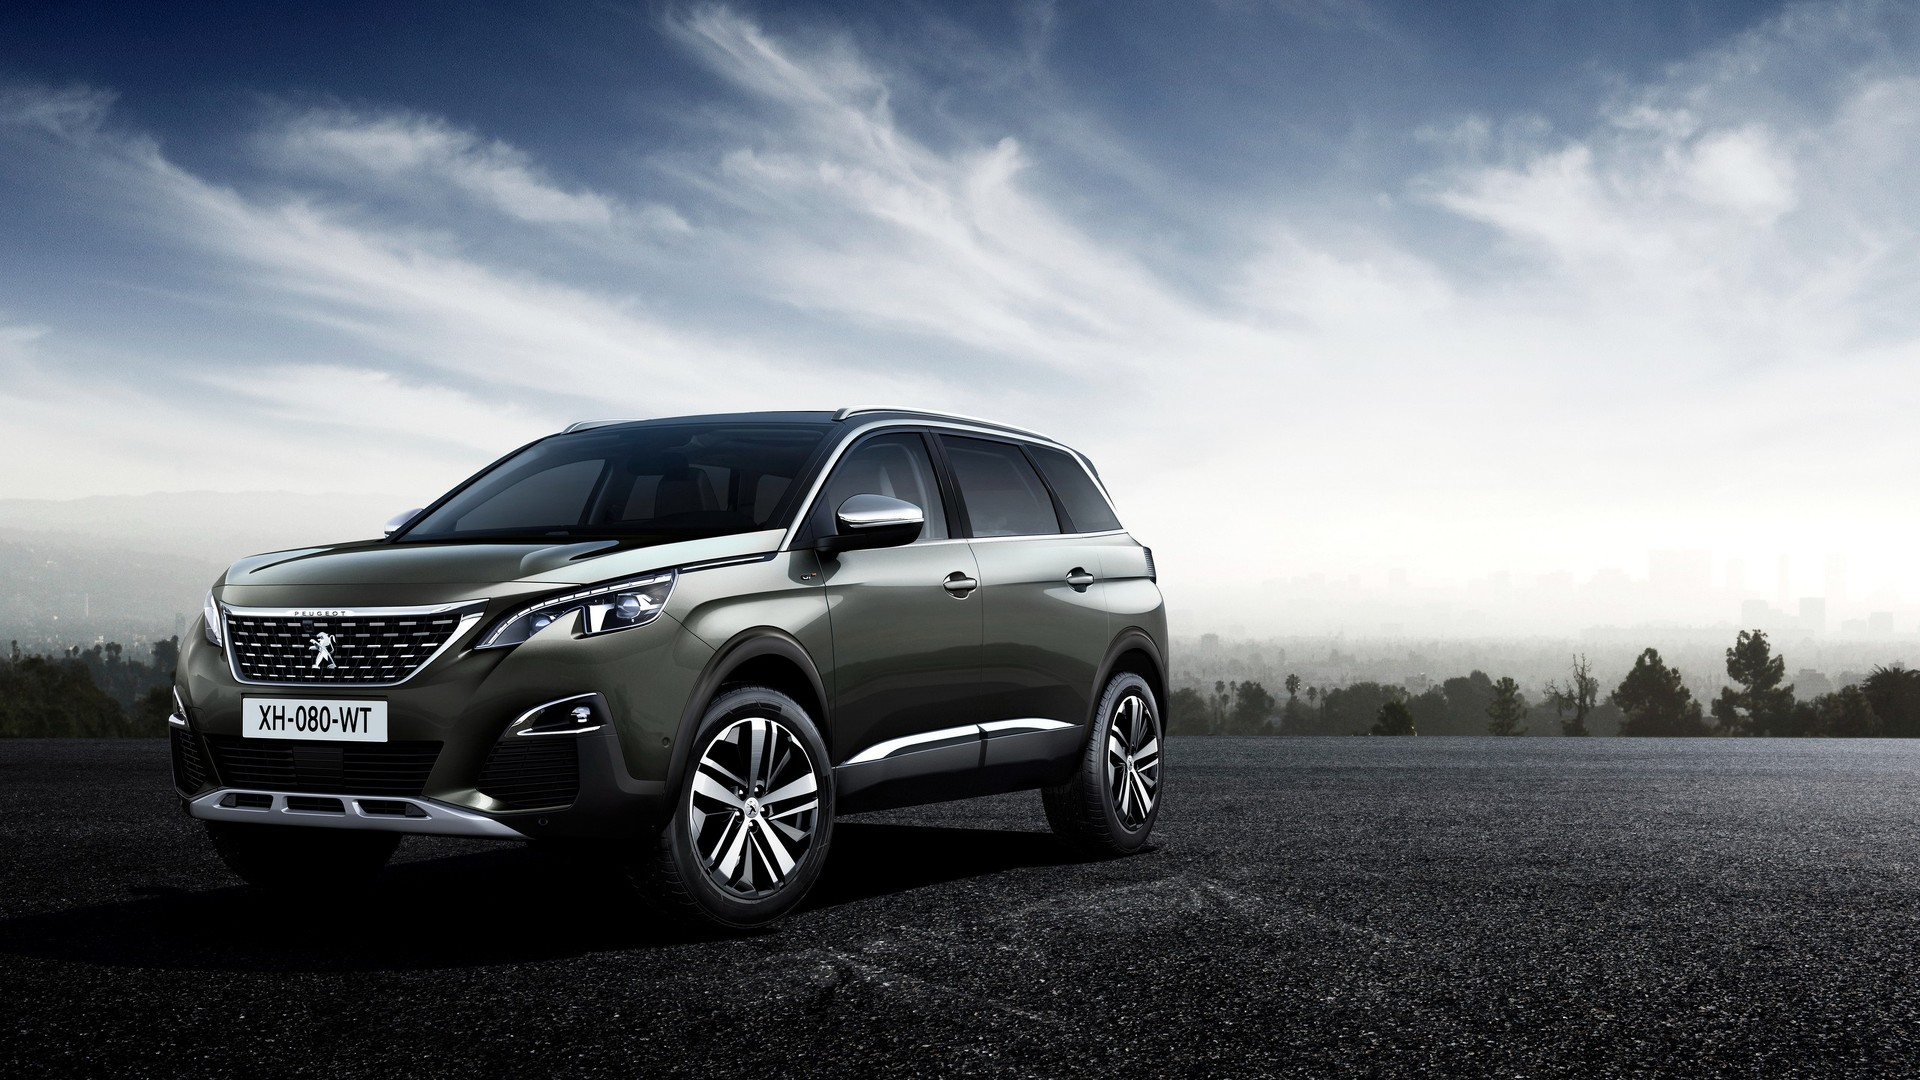 2018 peugeot 5008 suv. beautiful 5008 for 2018 peugeot 5008 suv r